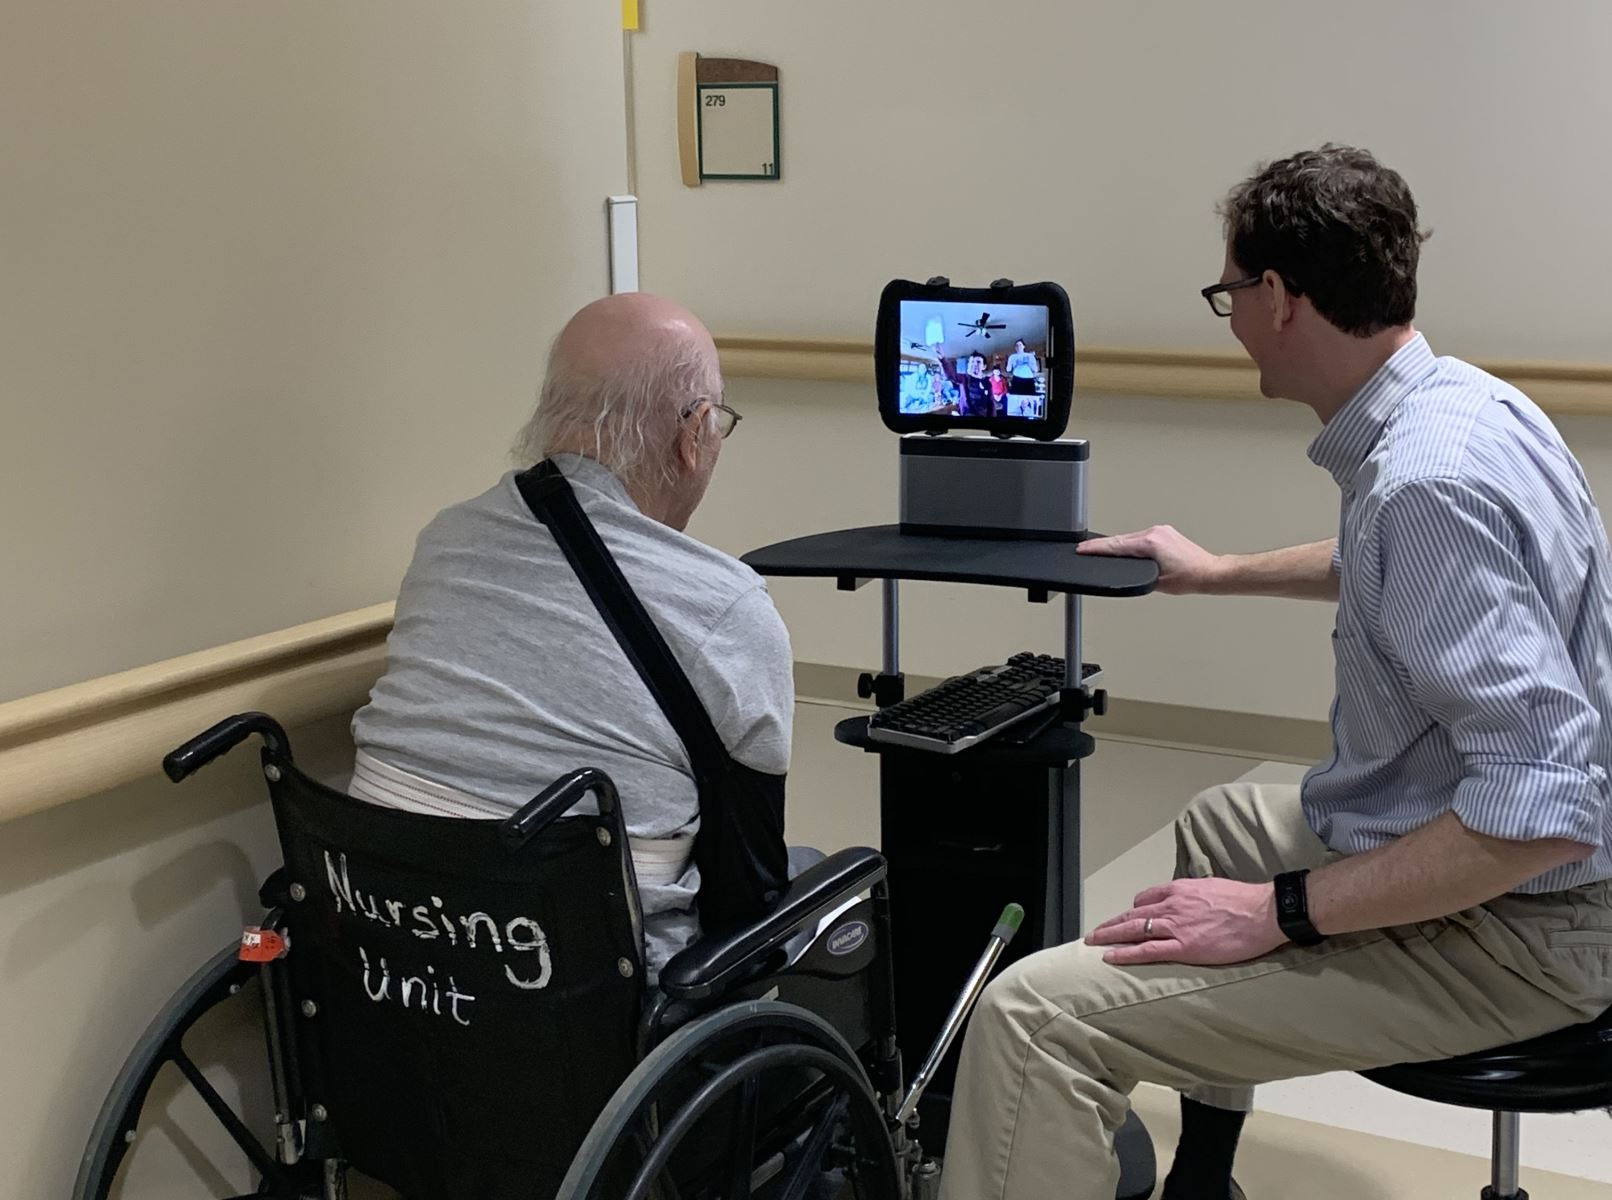 Family Sees Stroke Survivor's First Unassisted Steps Thanks to Telehealth Technology